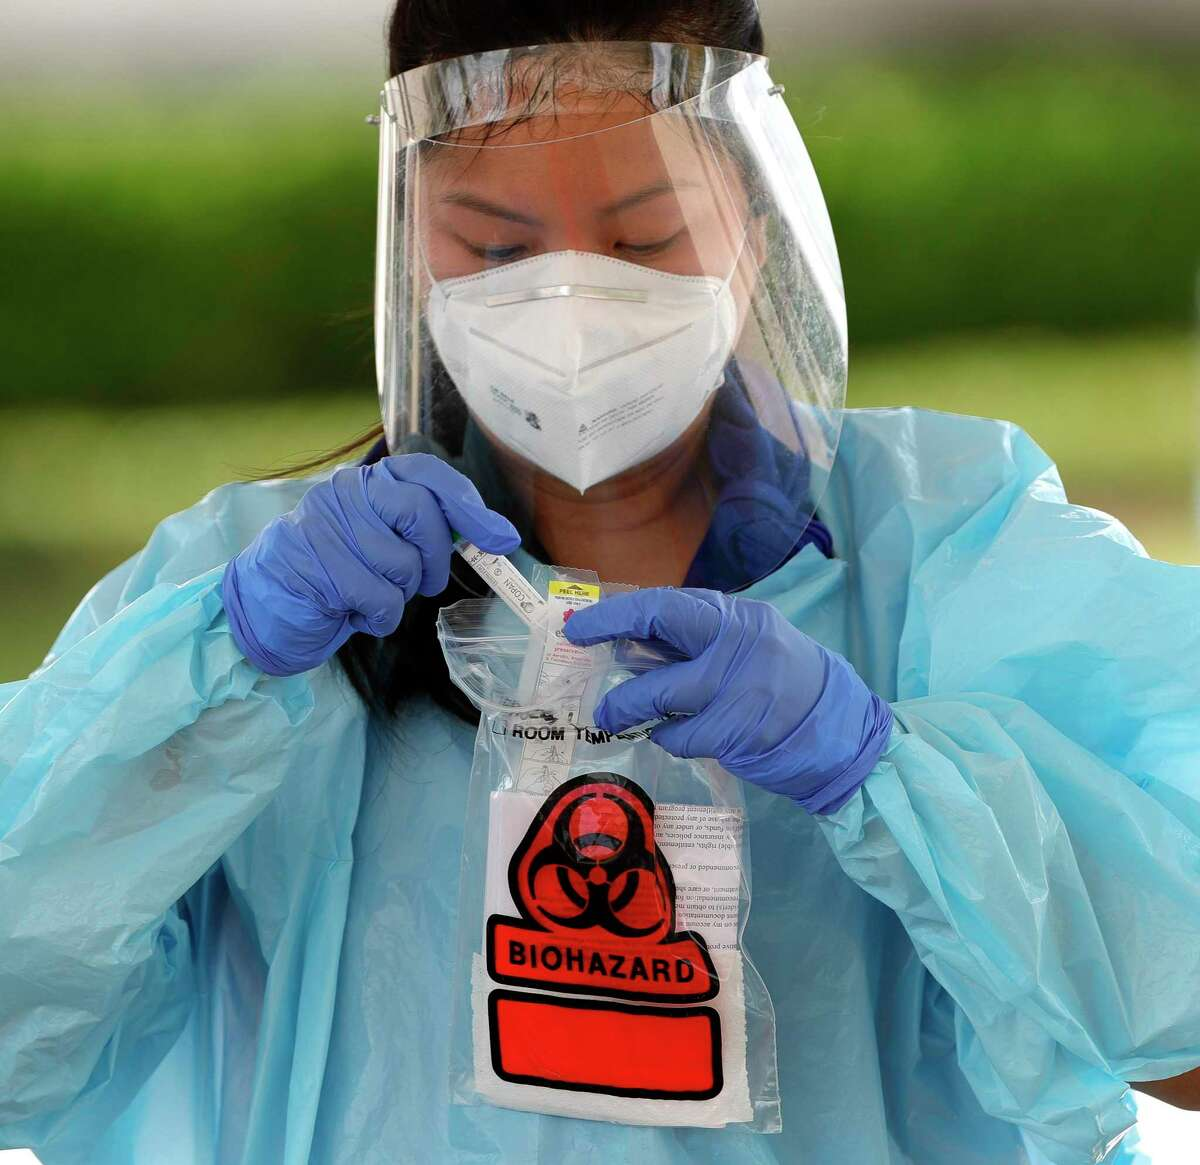 A pharmacist checks a coronavirus test for a patient at a COVID-19 testing site at Bear Branch Sports Fields in The Woodlands. Montgomery County's toll from COVID-19 reached 105 Tuesday, with health officials reporting five more deaths related to the virus.